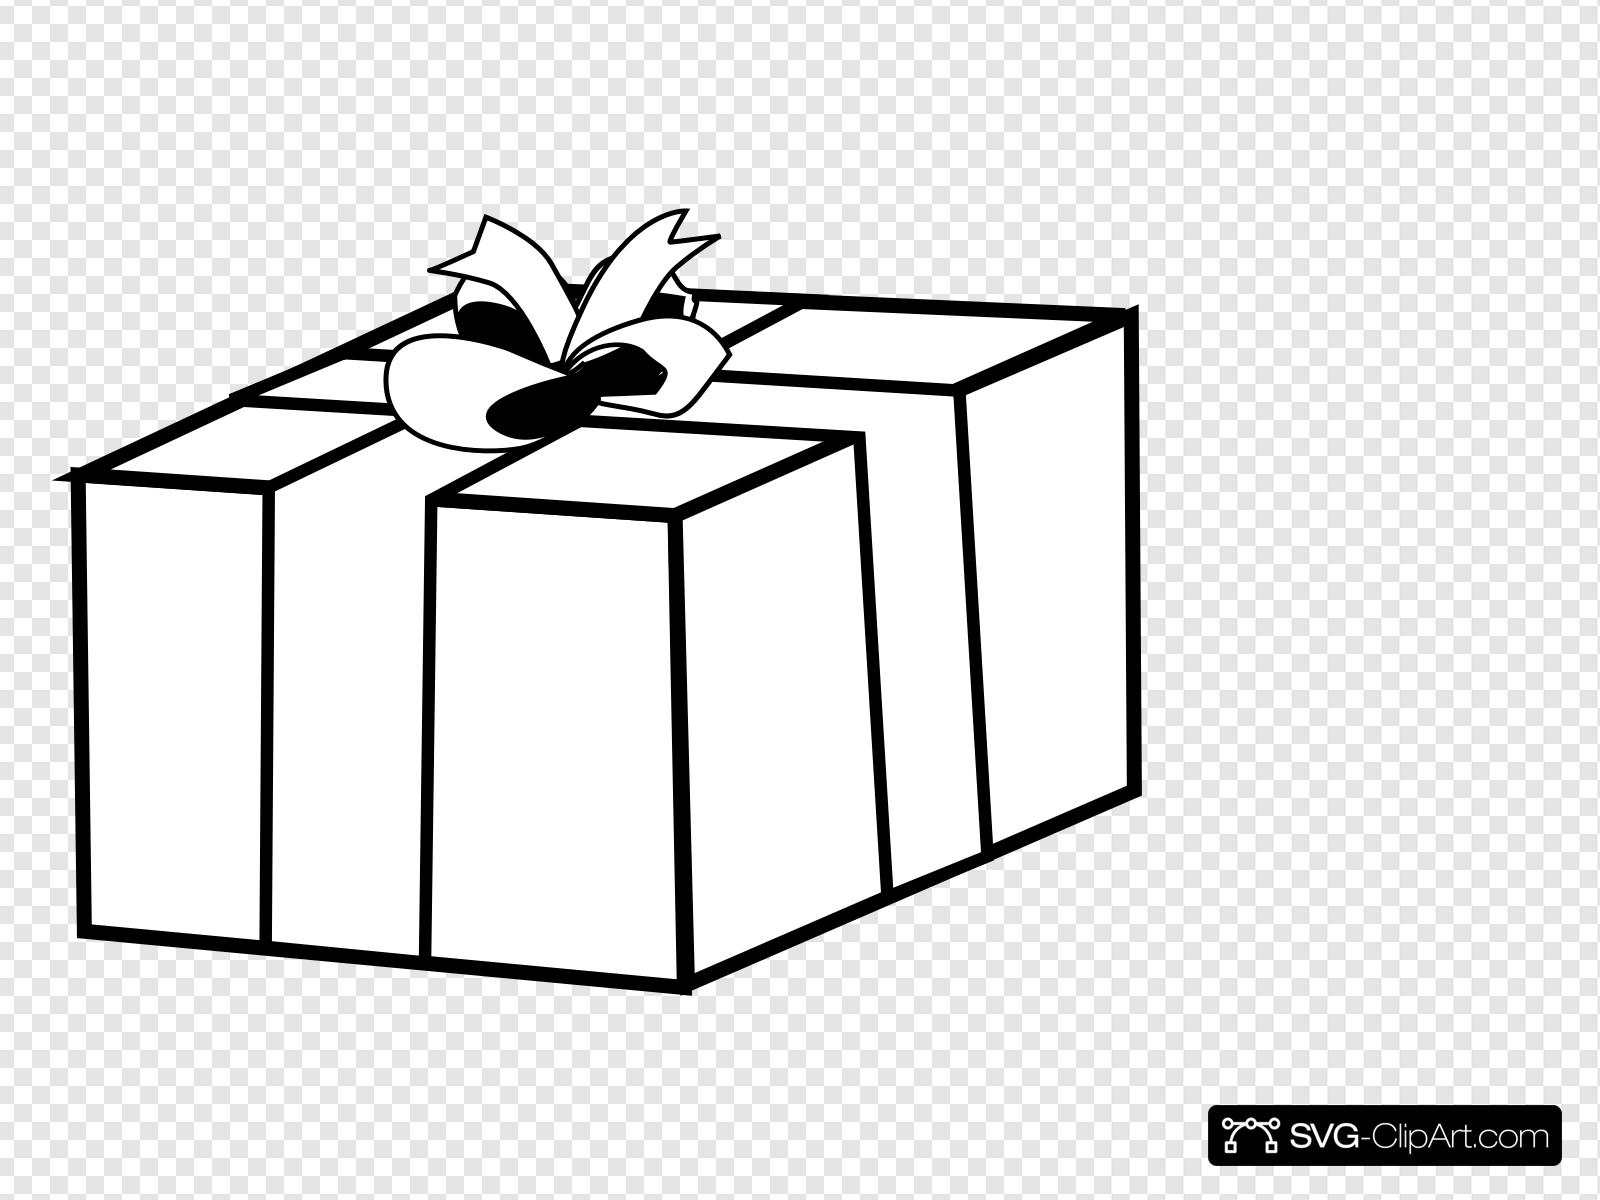 Gift Present Outline Clip art, Icon and SVG.